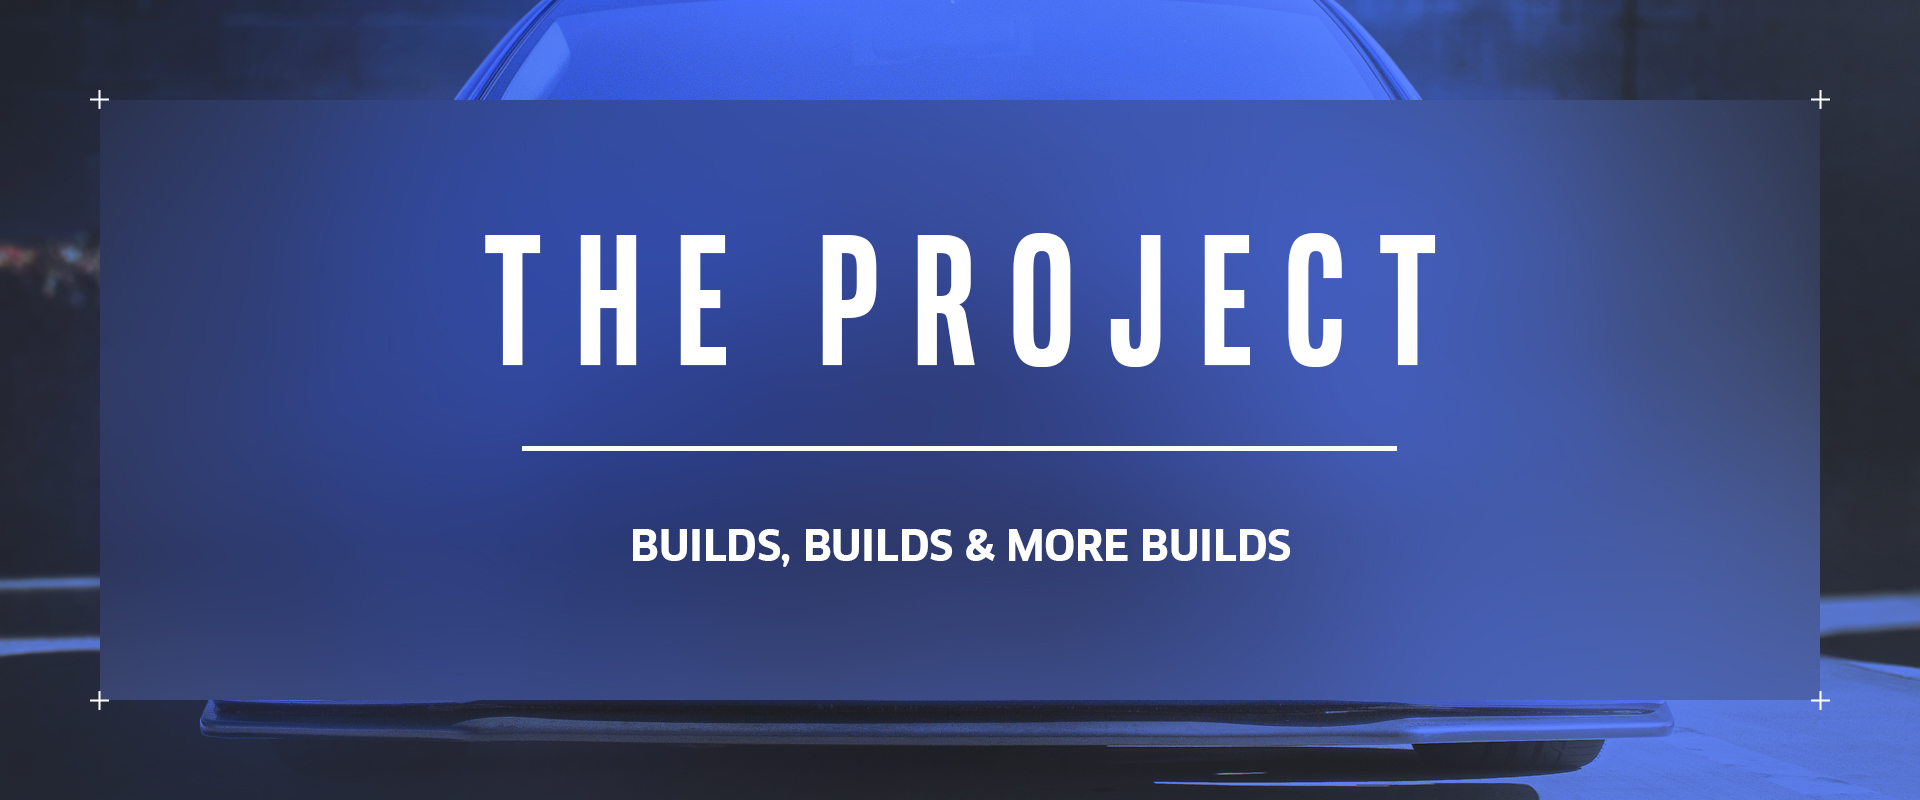 The Project Banner